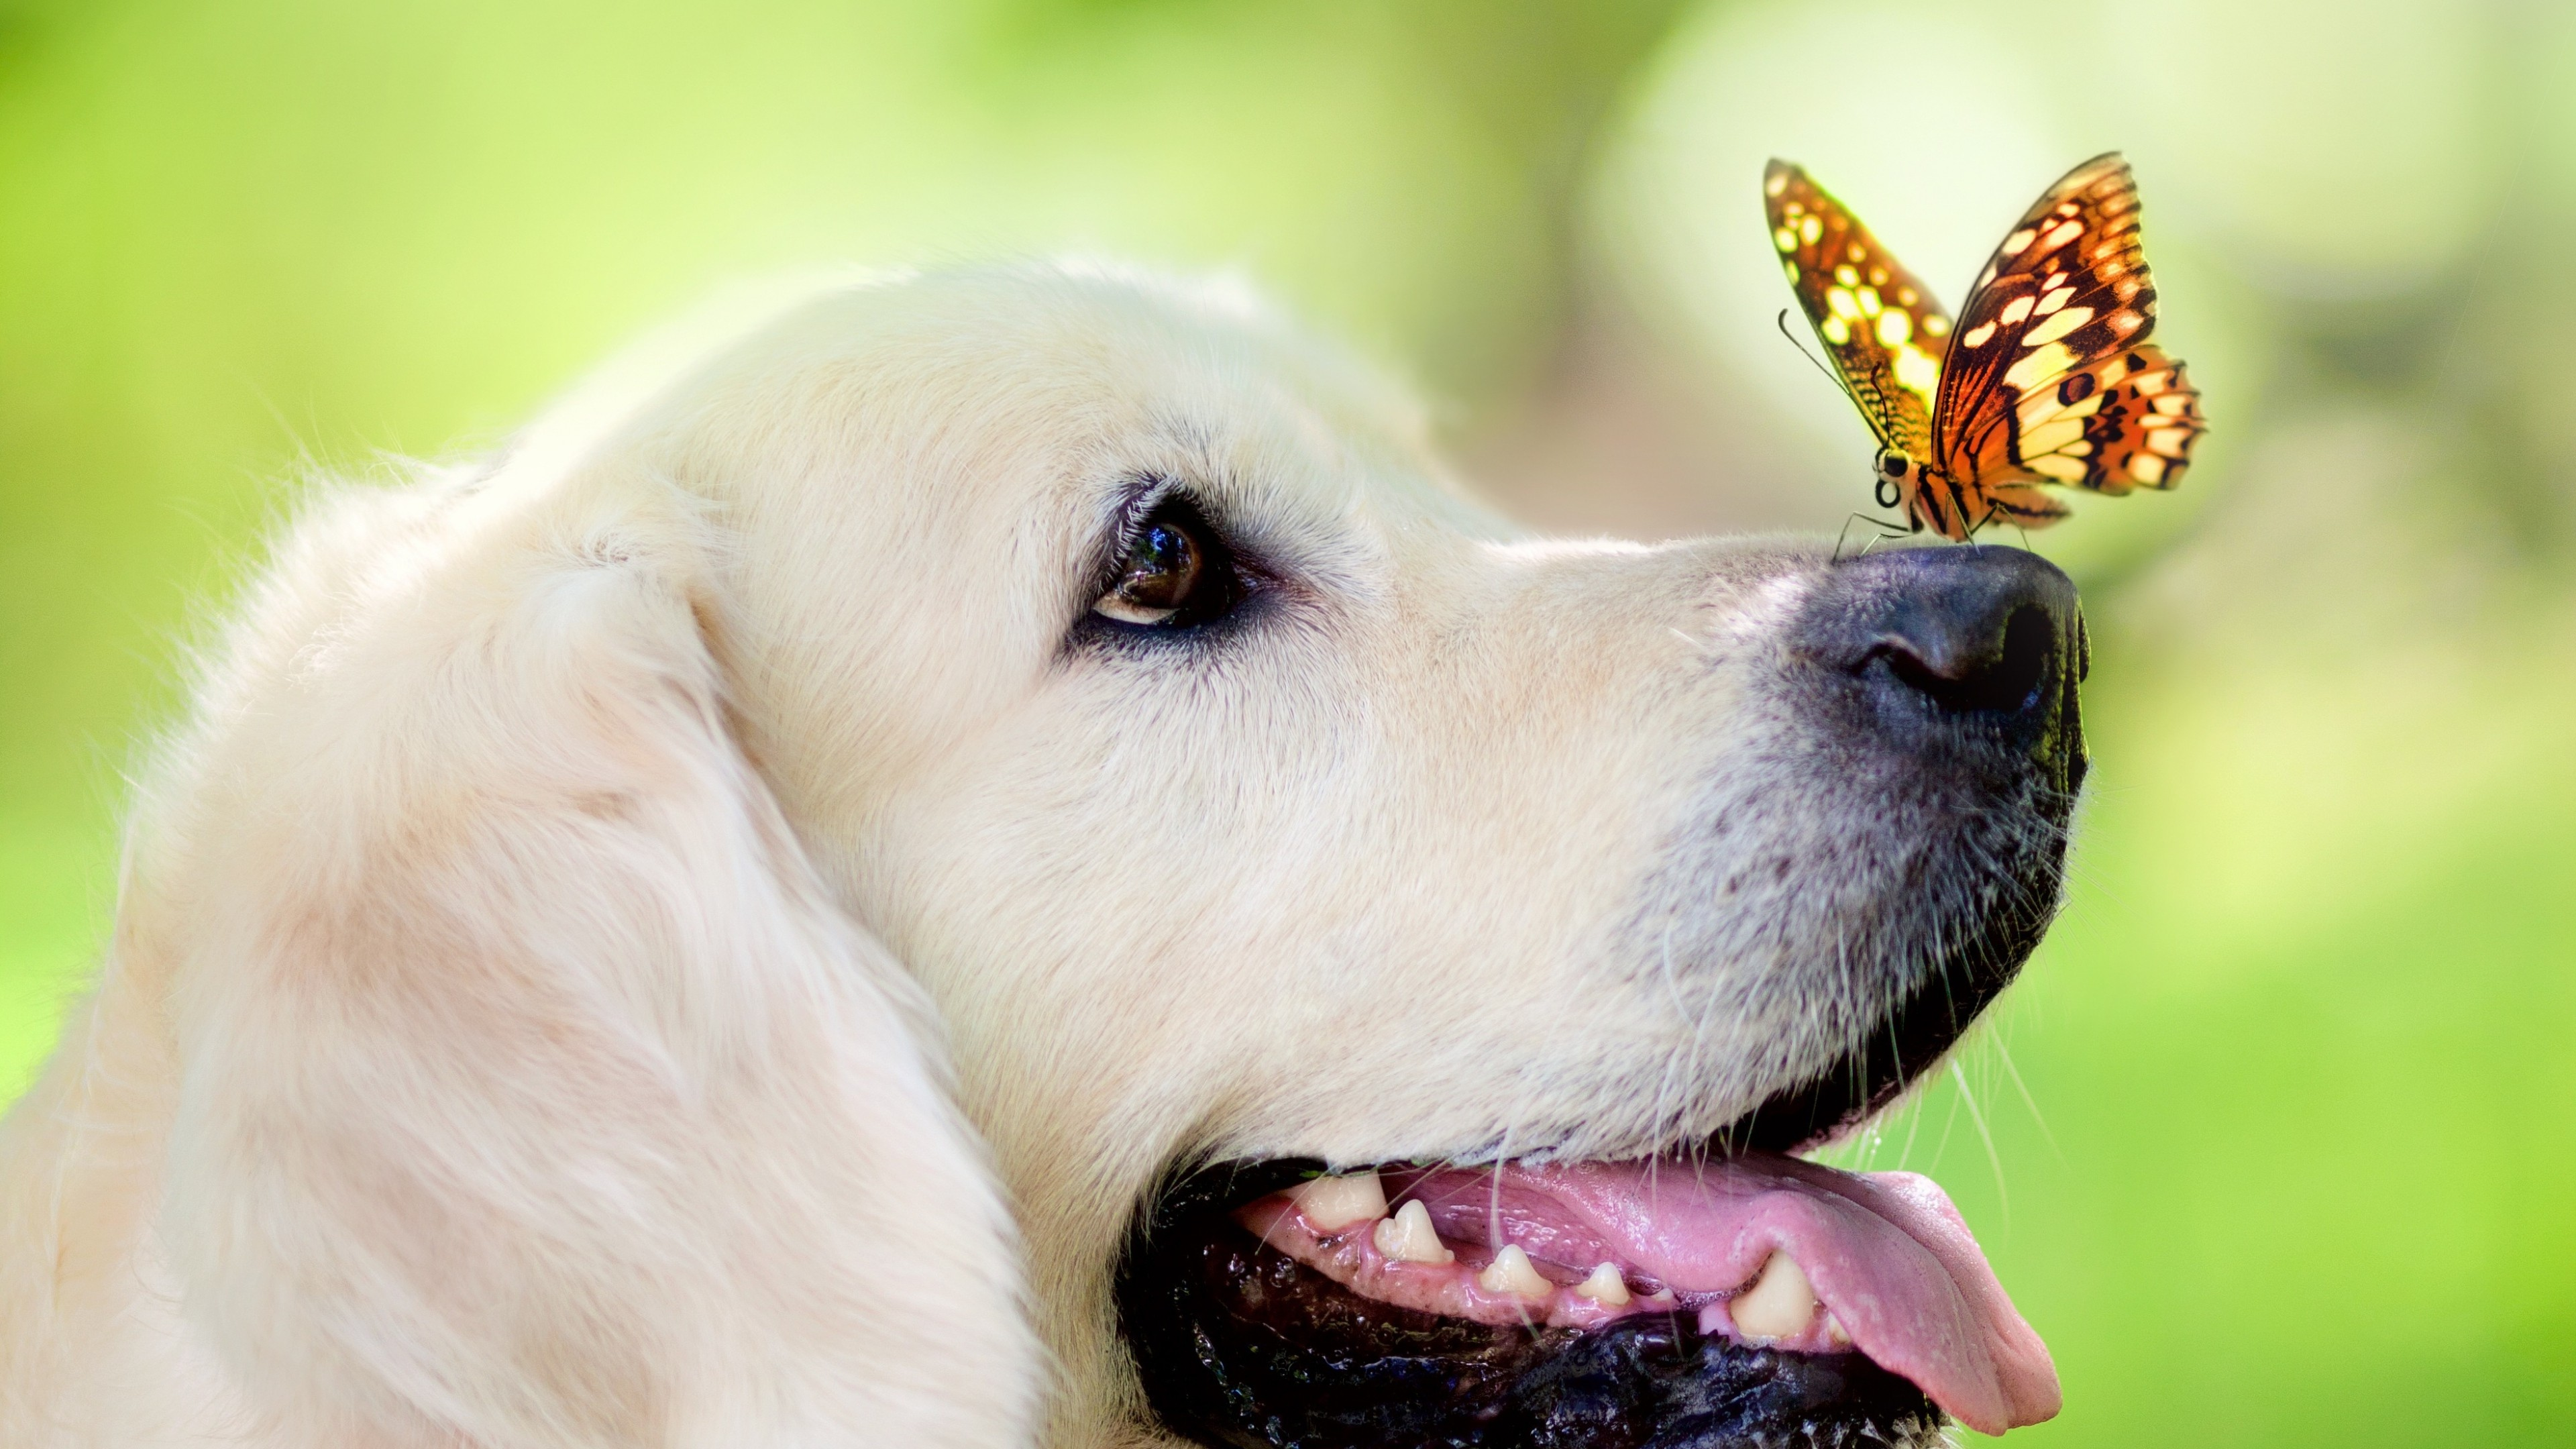 Funny Animal Wallpapers for Download with Labrador Dog and 3840x2160